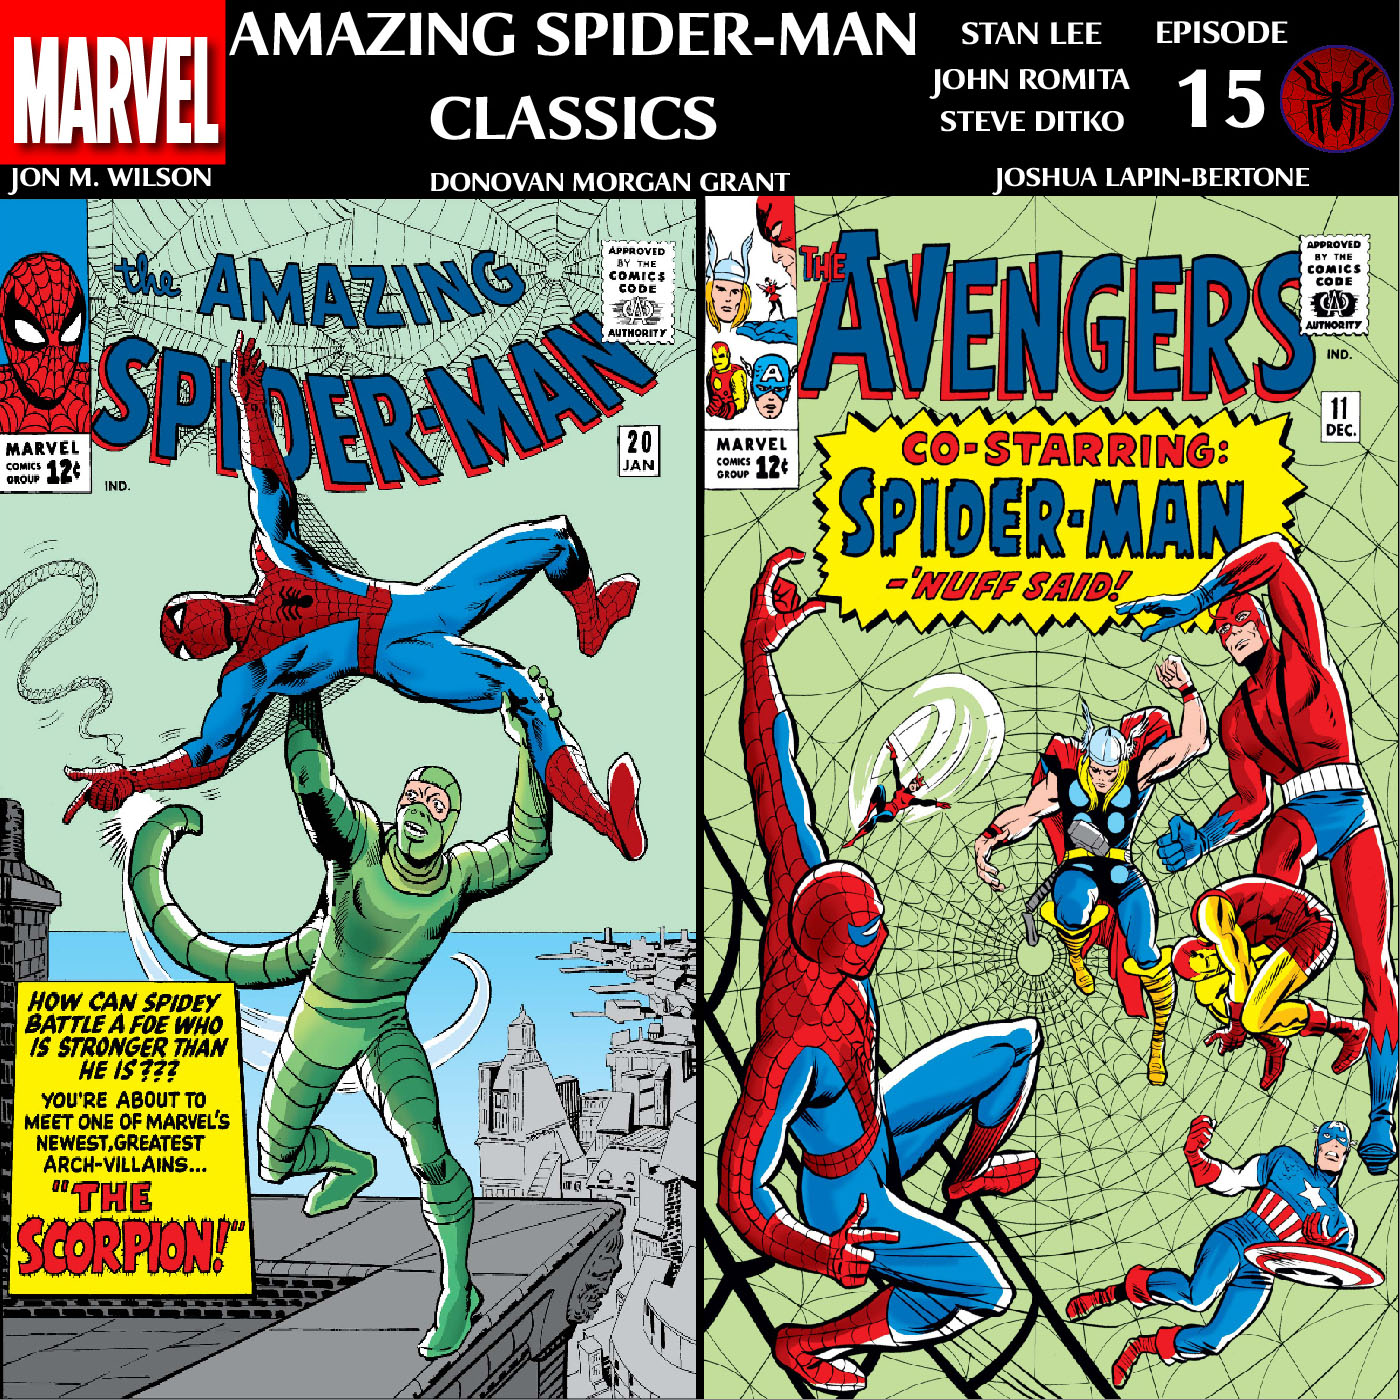 ASM Classics Episode 15: ASM 20 and Avengers 11